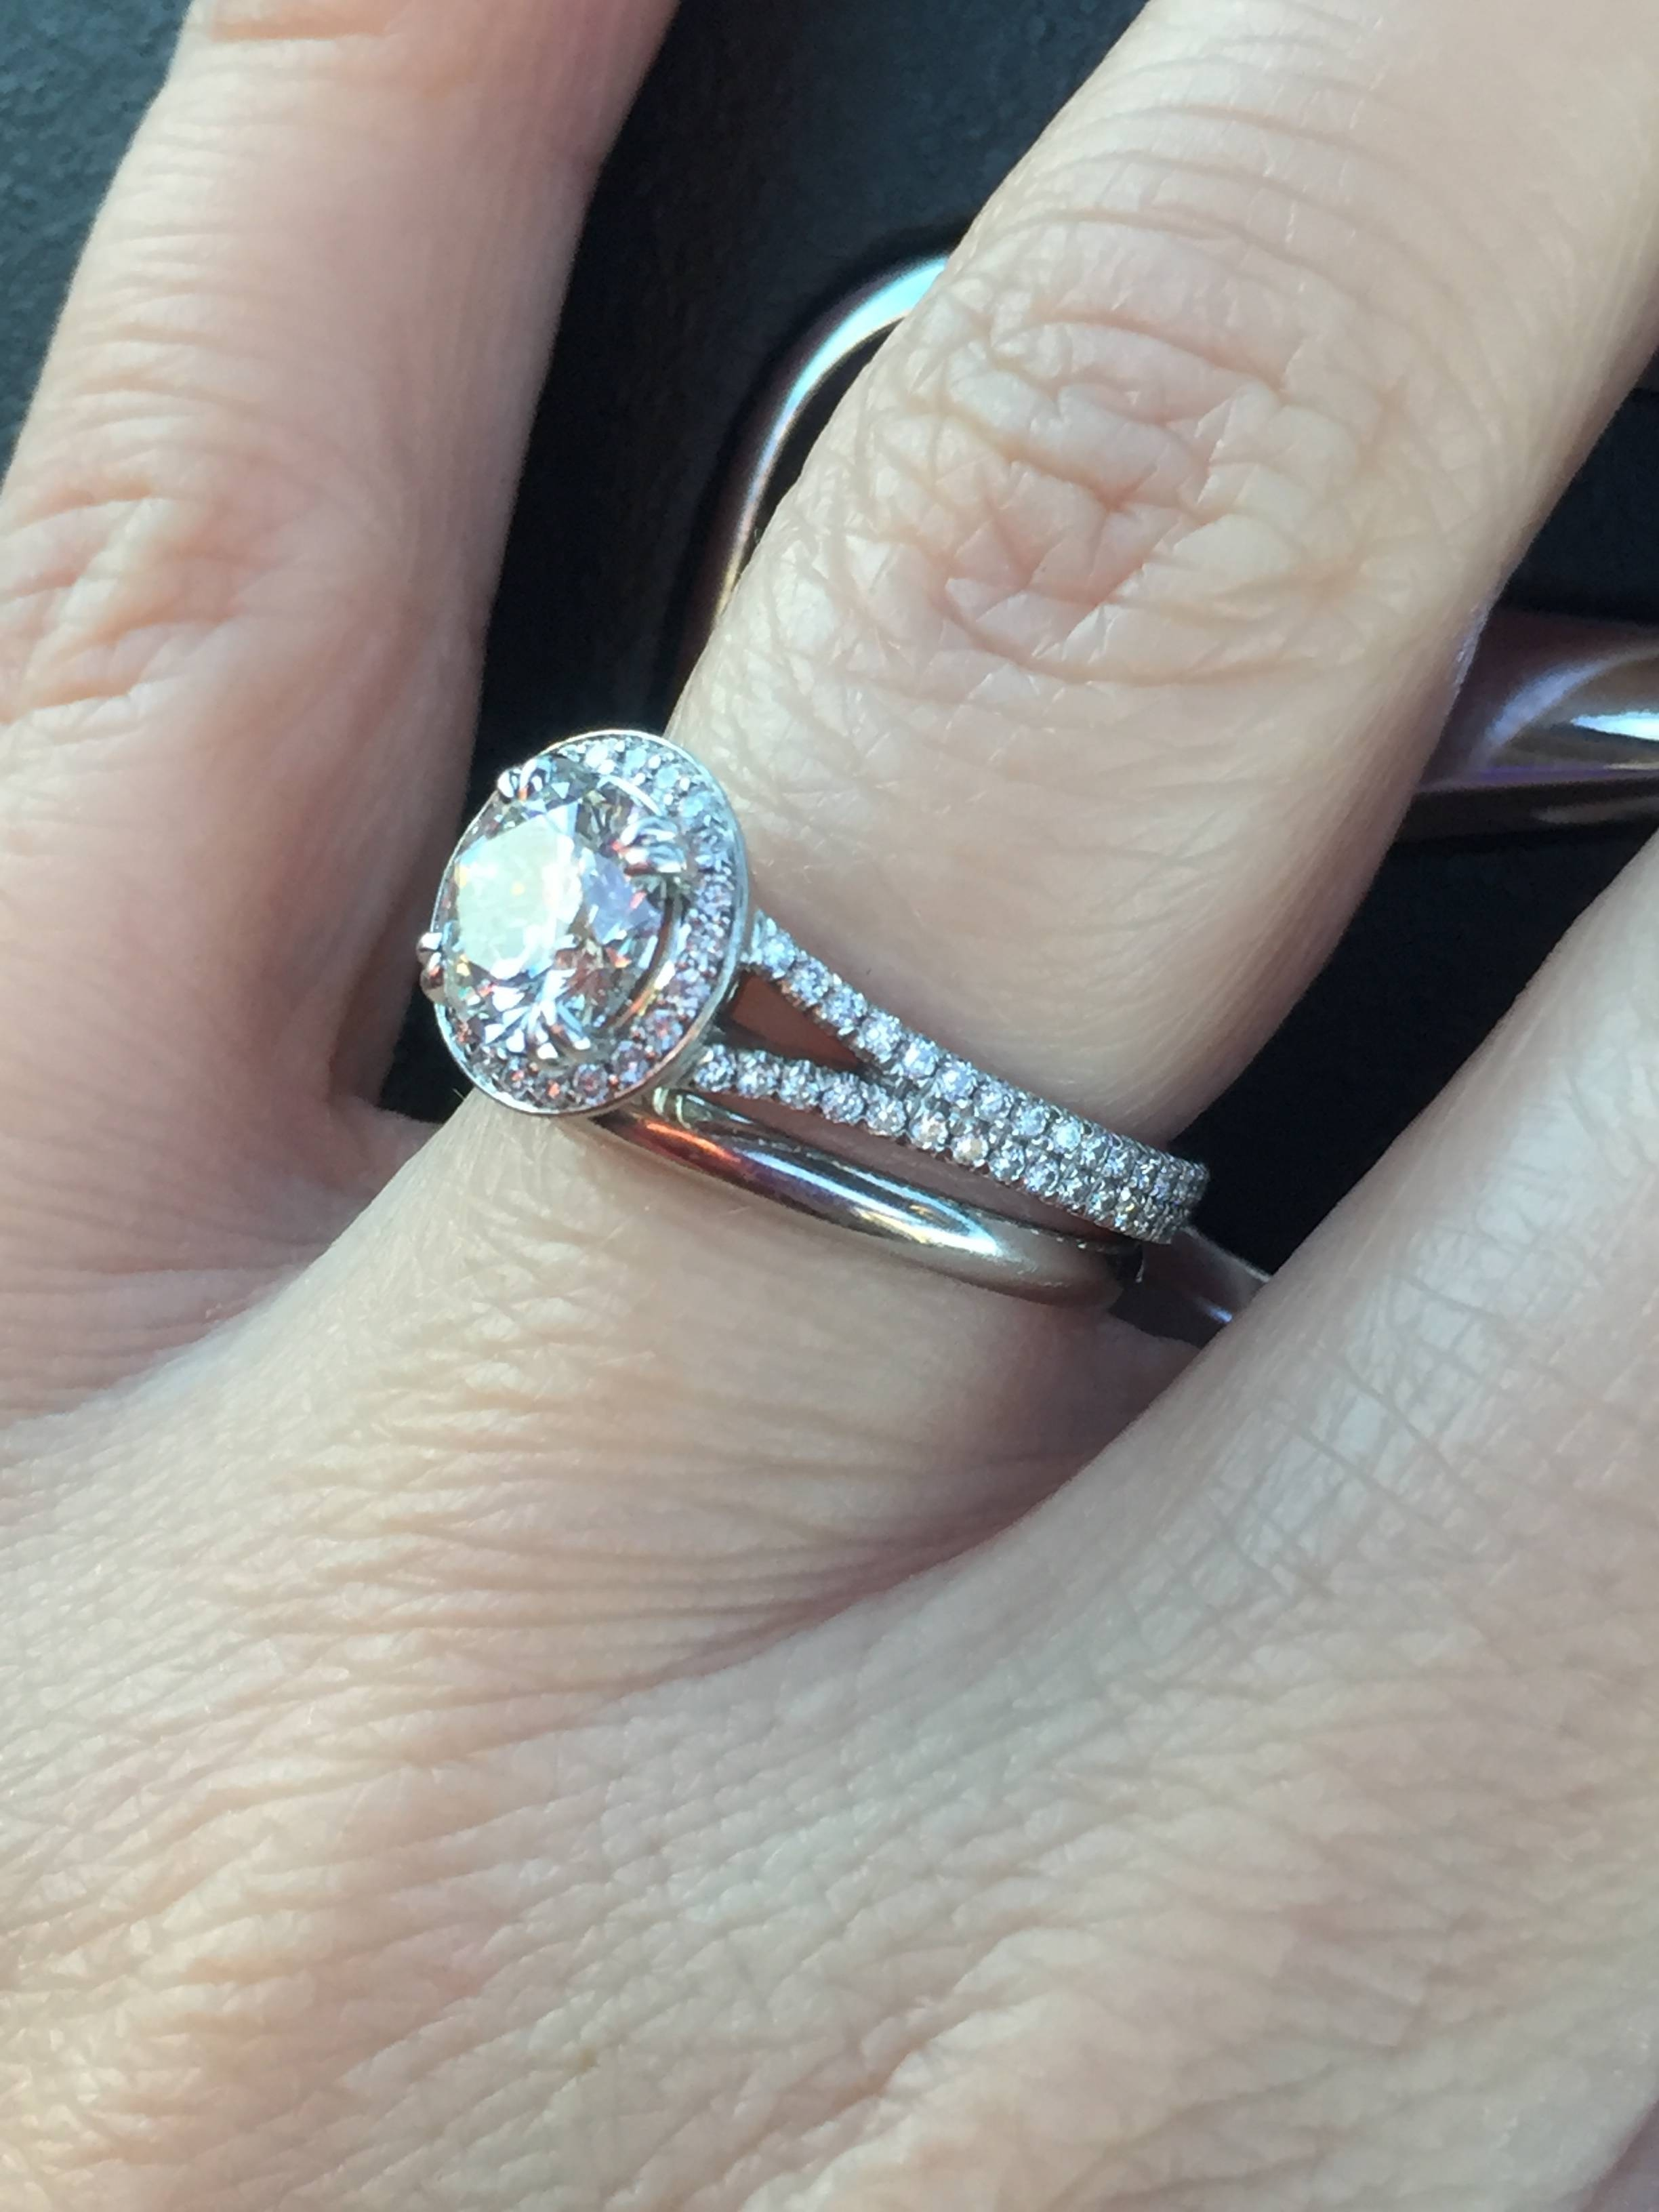 Show Me Your Plain Wedding Band With Your Engagement Ring In Wedding Bands That Go With Halo Rings (View 11 of 15)